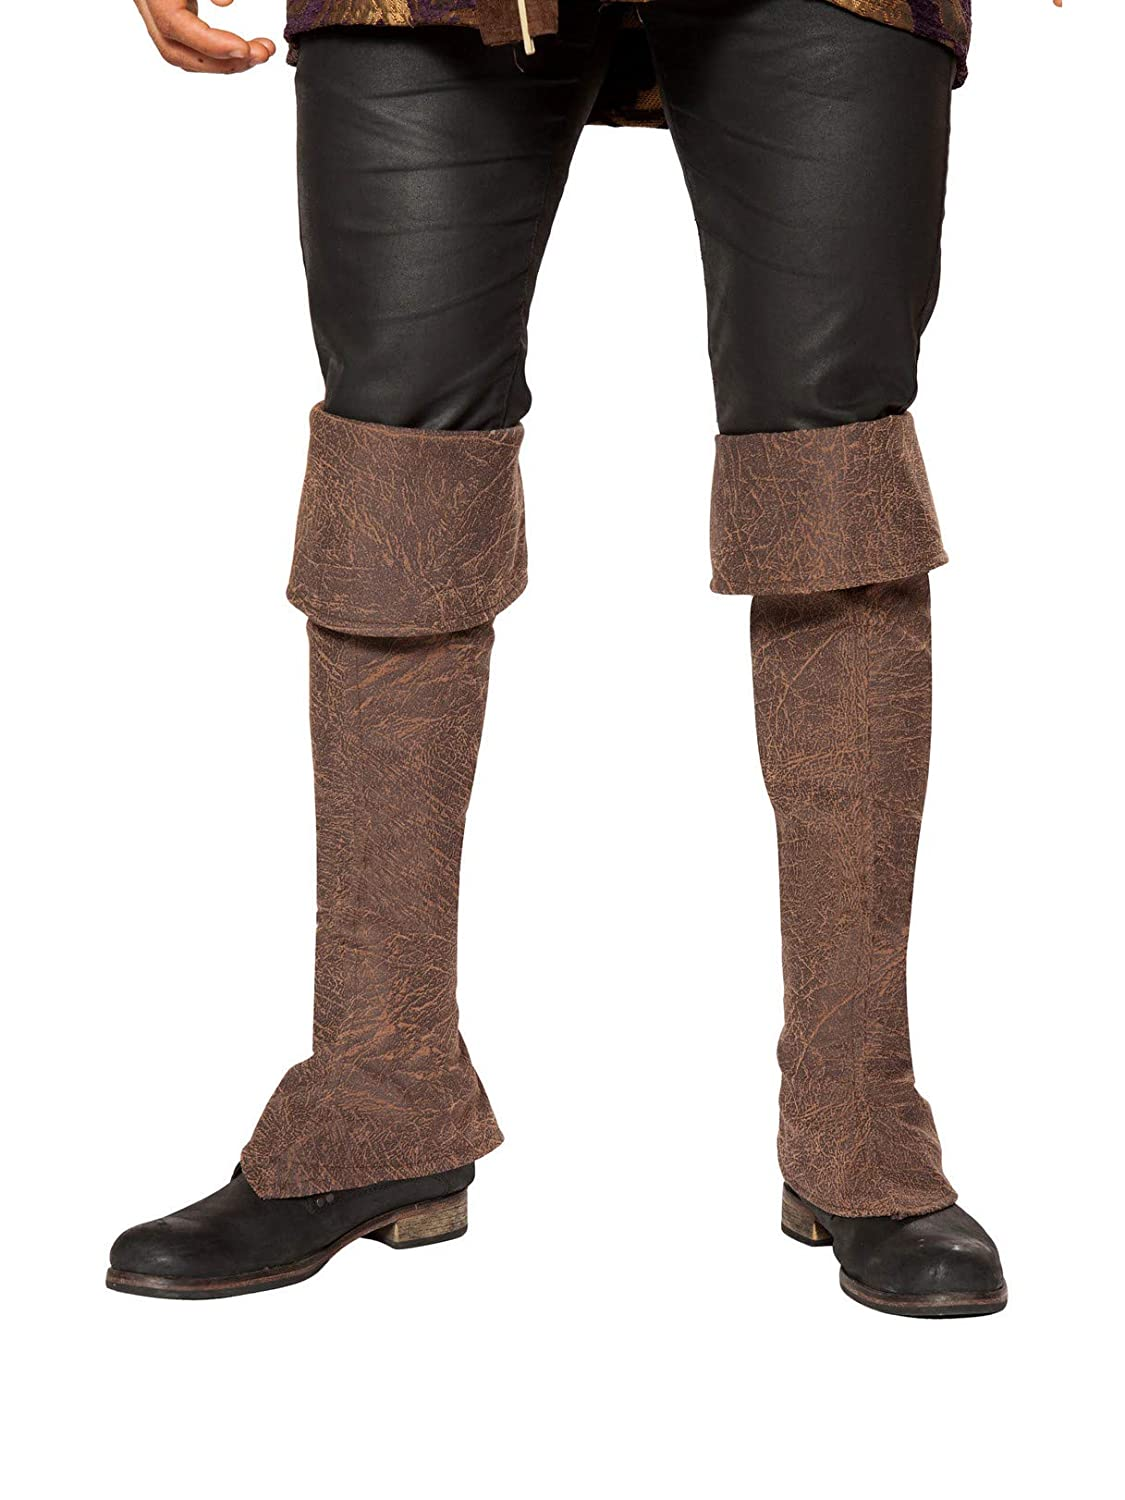 Pirate Boot Covers Roma Costume RM-4650B